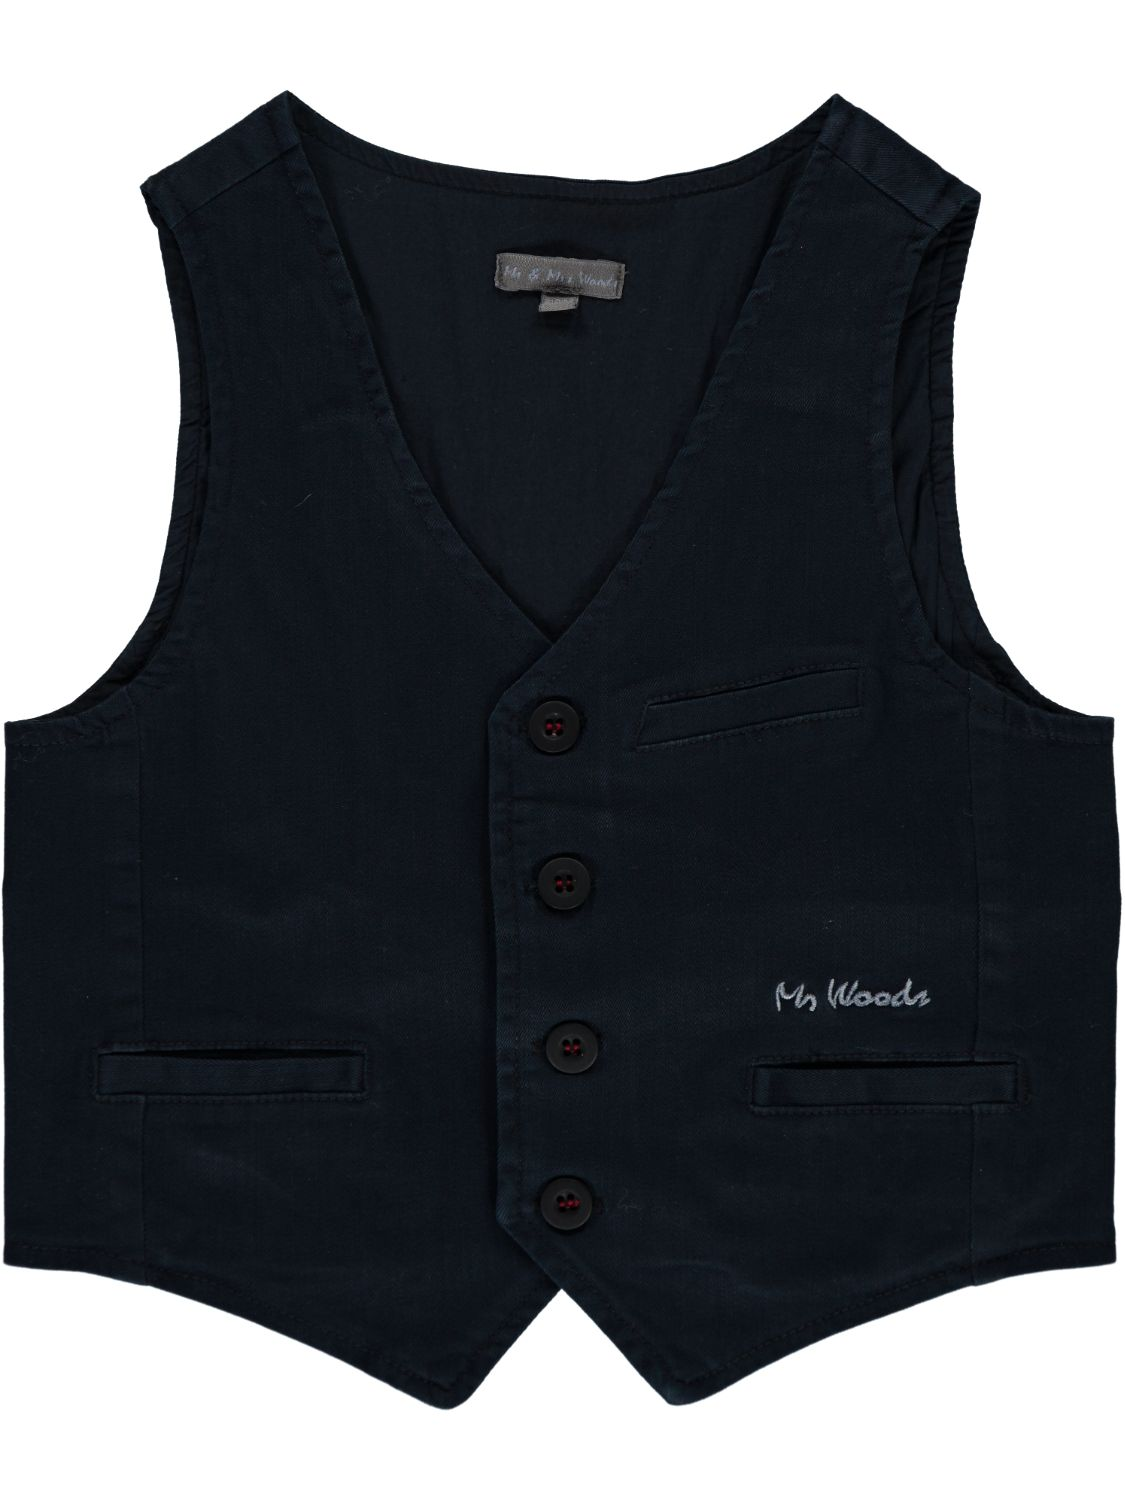 Mr Mrs Woods Gilet